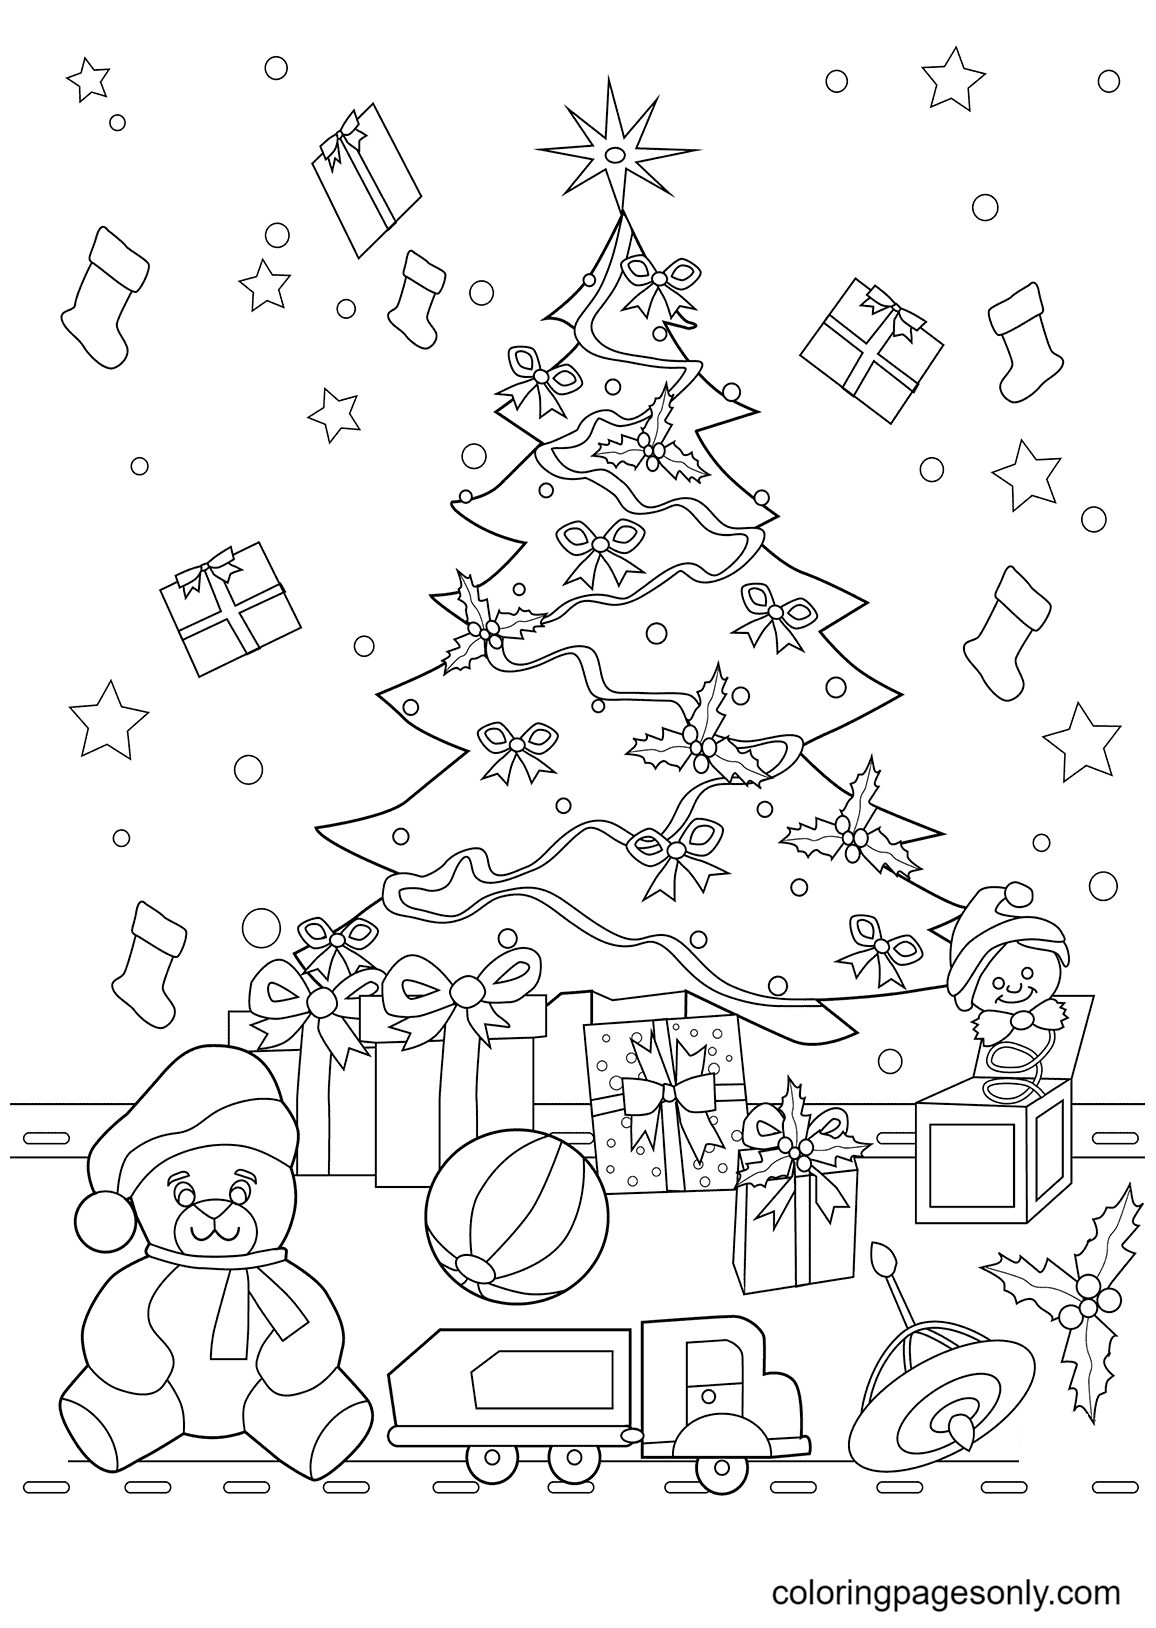 Christmas Tree and Presents Coloring Page